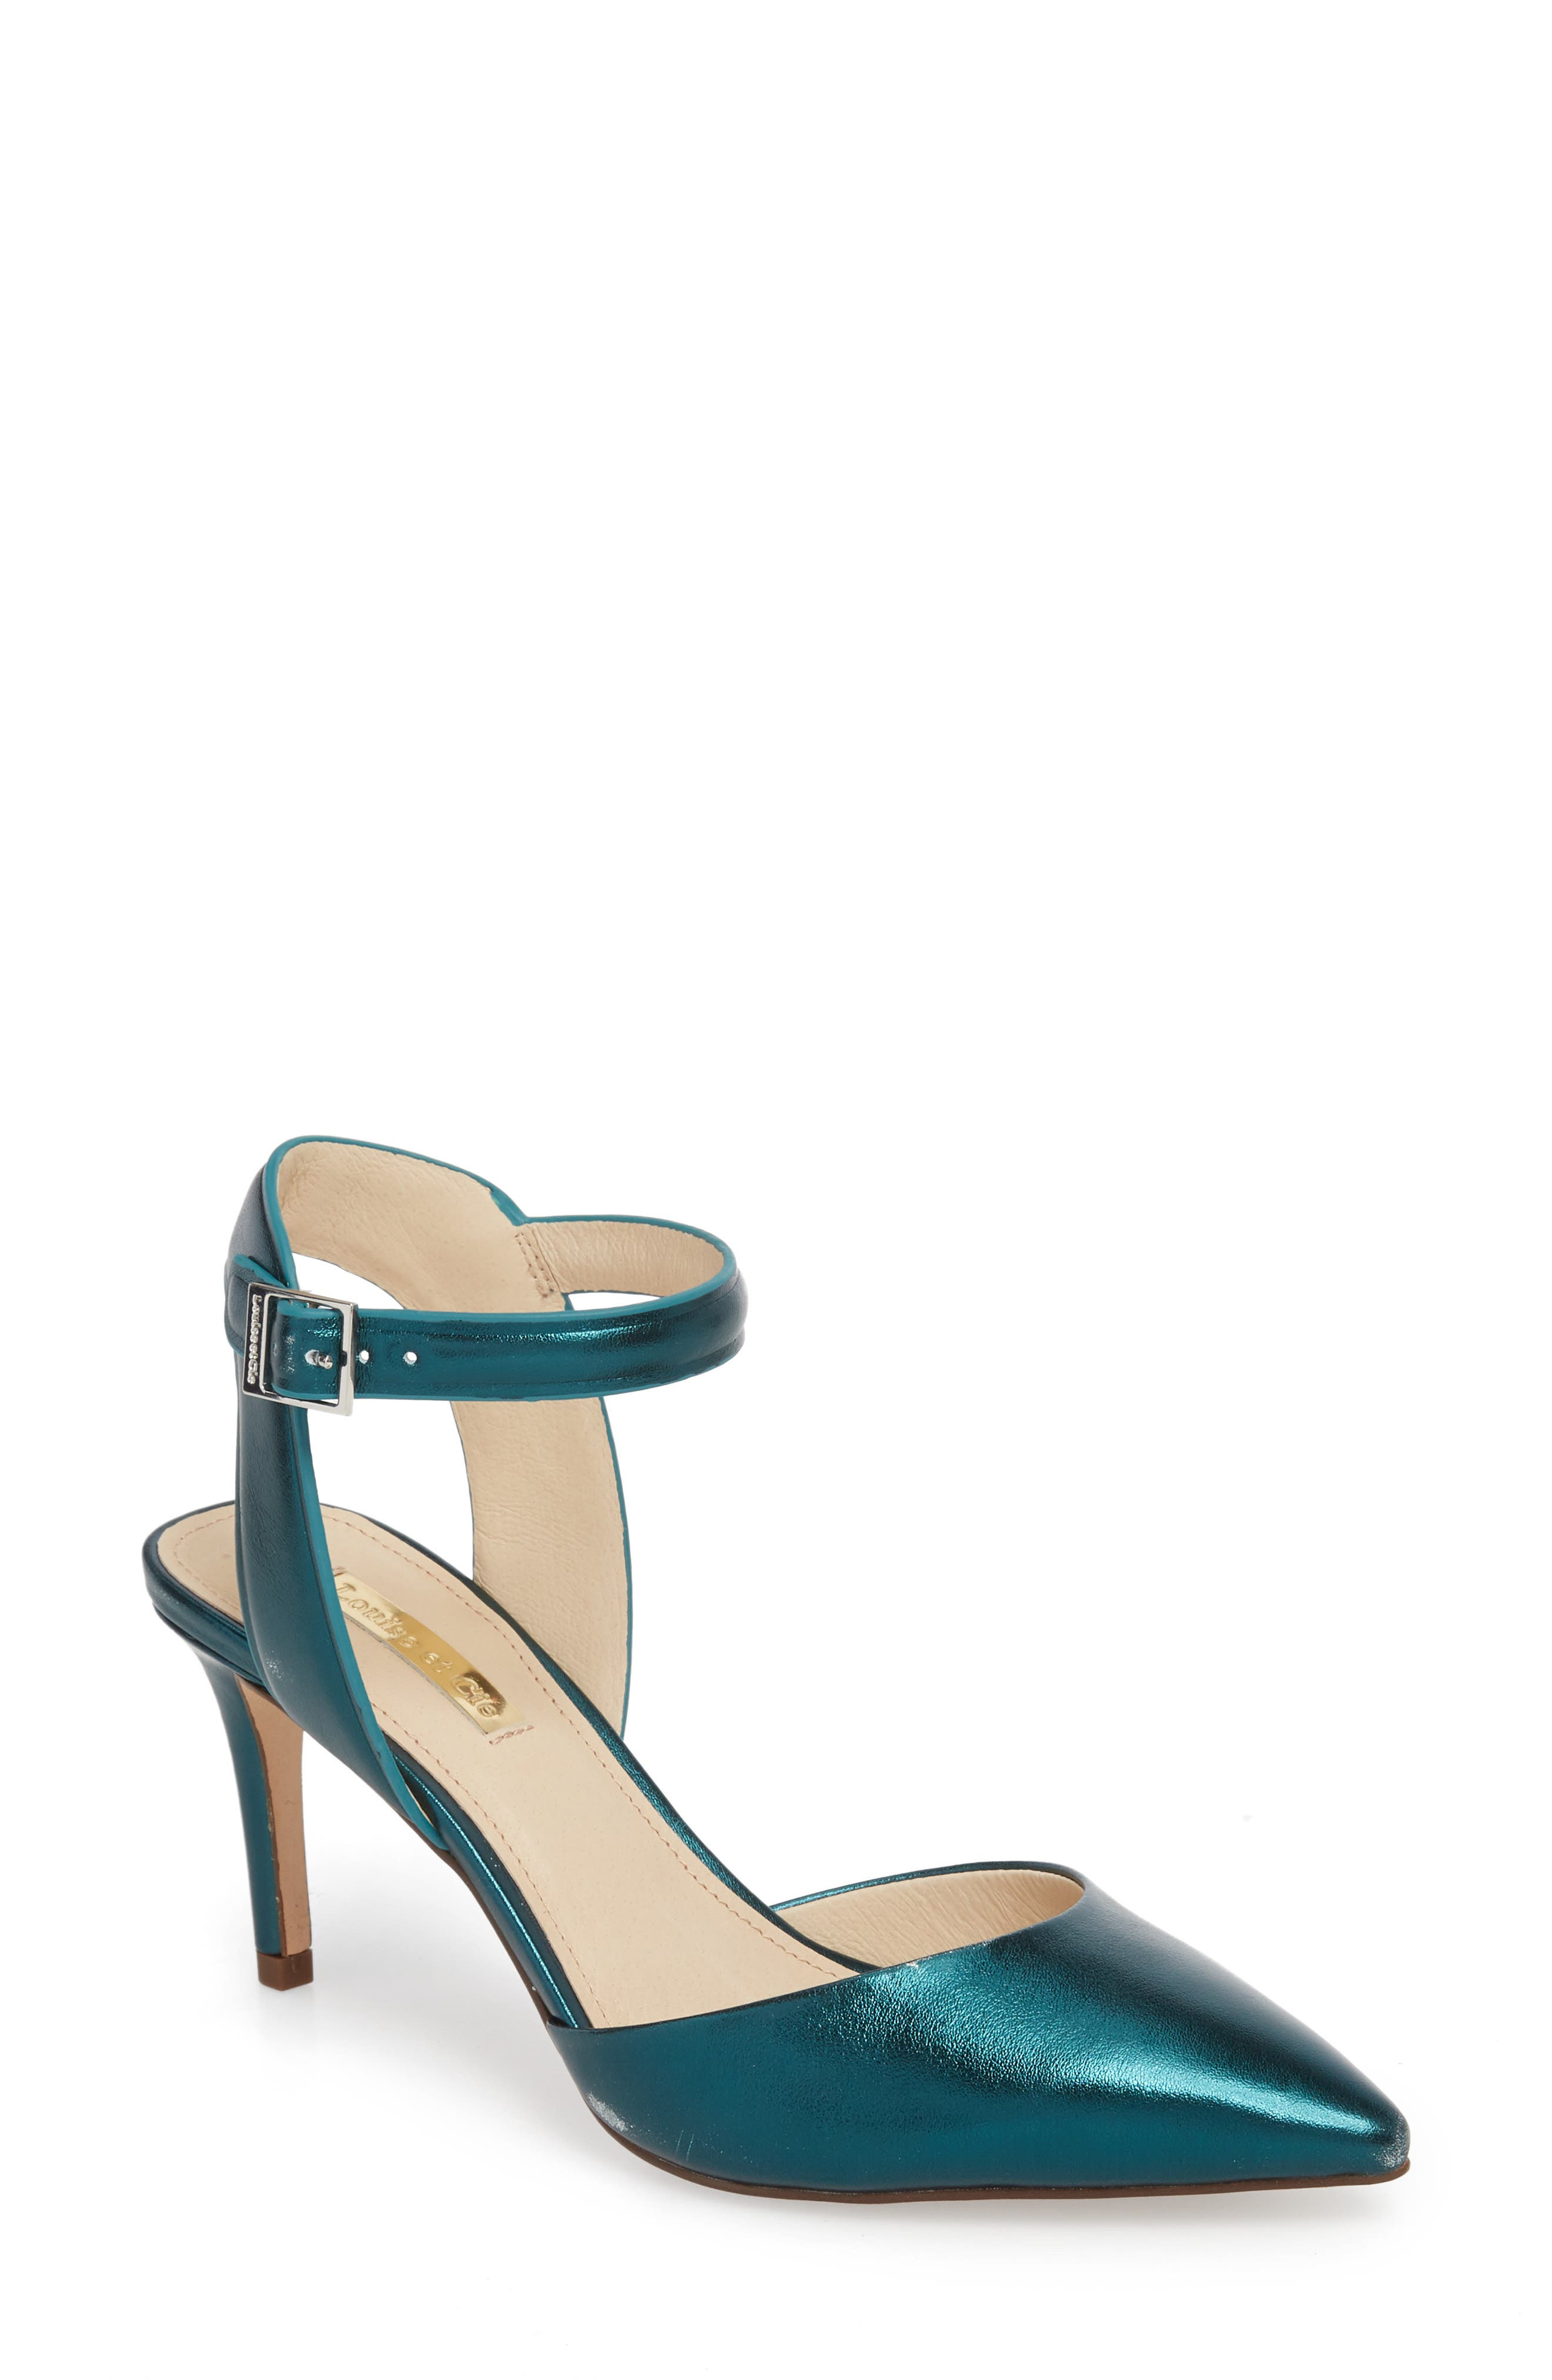 Kota Ankle Strap Pump,                             Main thumbnail 1, color,                             Teal Metallic Leather